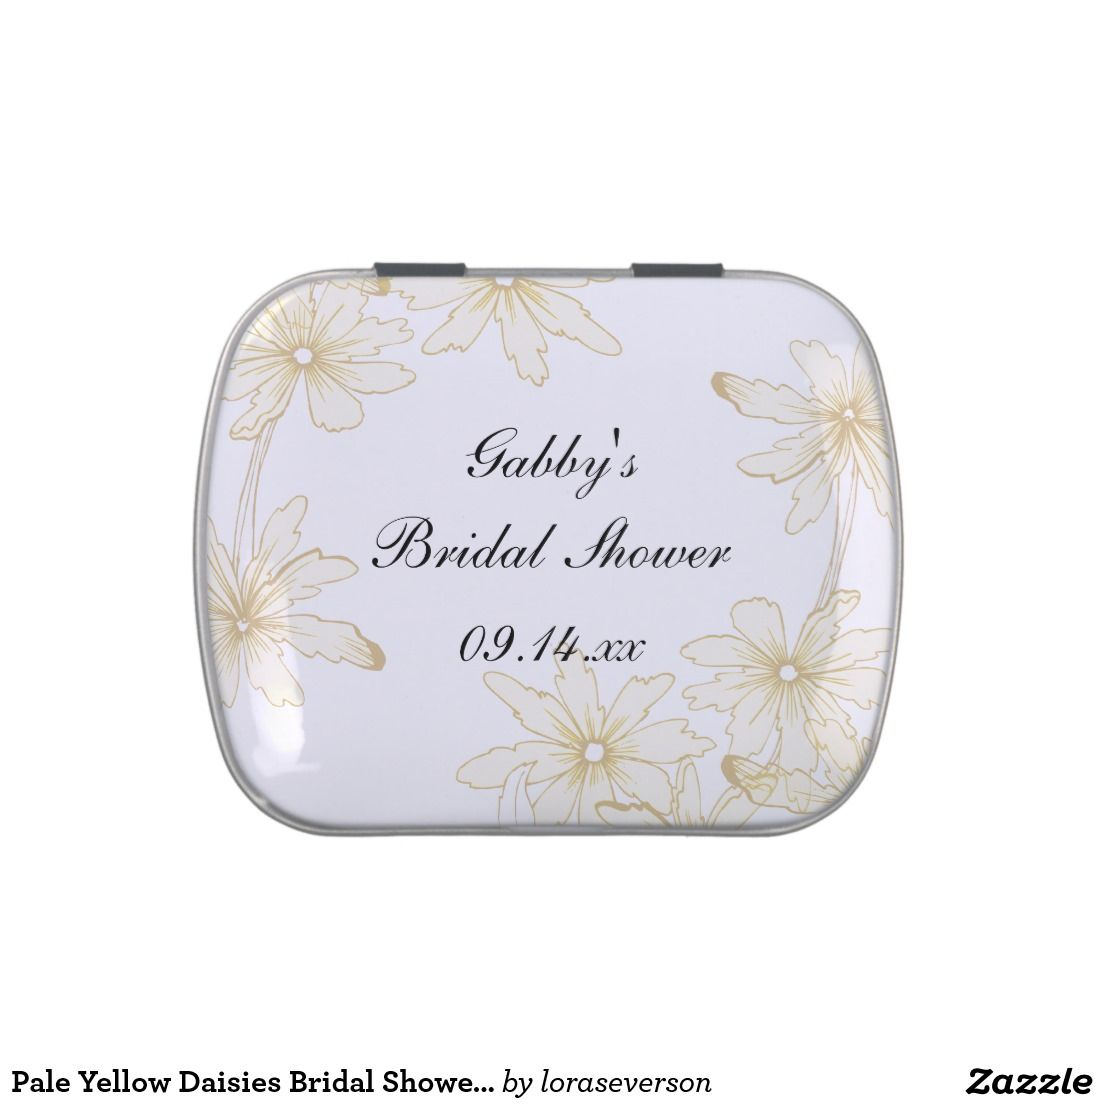 Pale Yellow Daisies Bridal Shower Favor Candy Tin   Bridal Shower ...